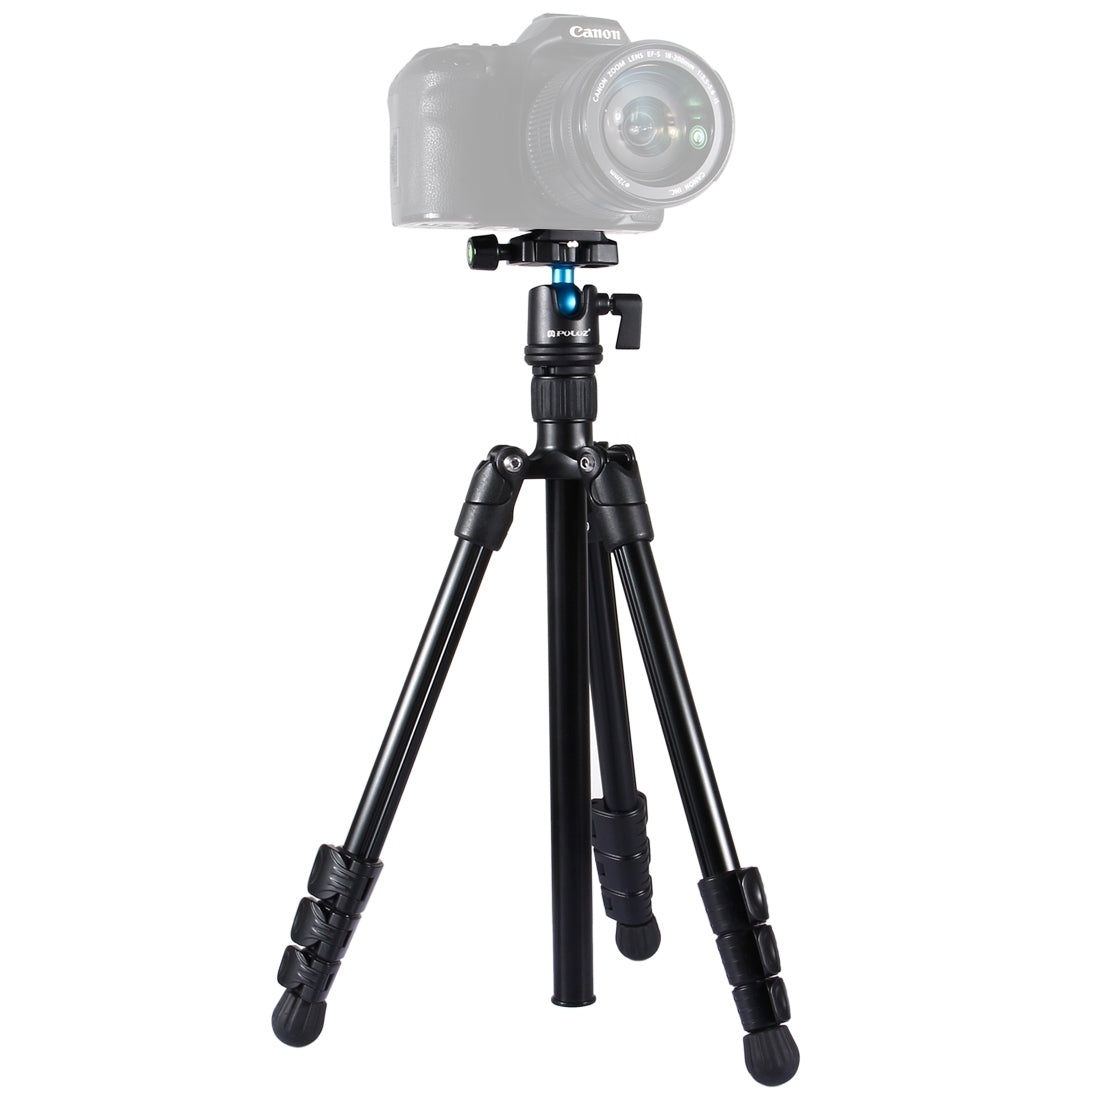 4-Section Folding Legs Metal  Tripod Mount with 360 Degree Ball Head for DSLR & Digital Camera, Adjustable Height: 42-130cm